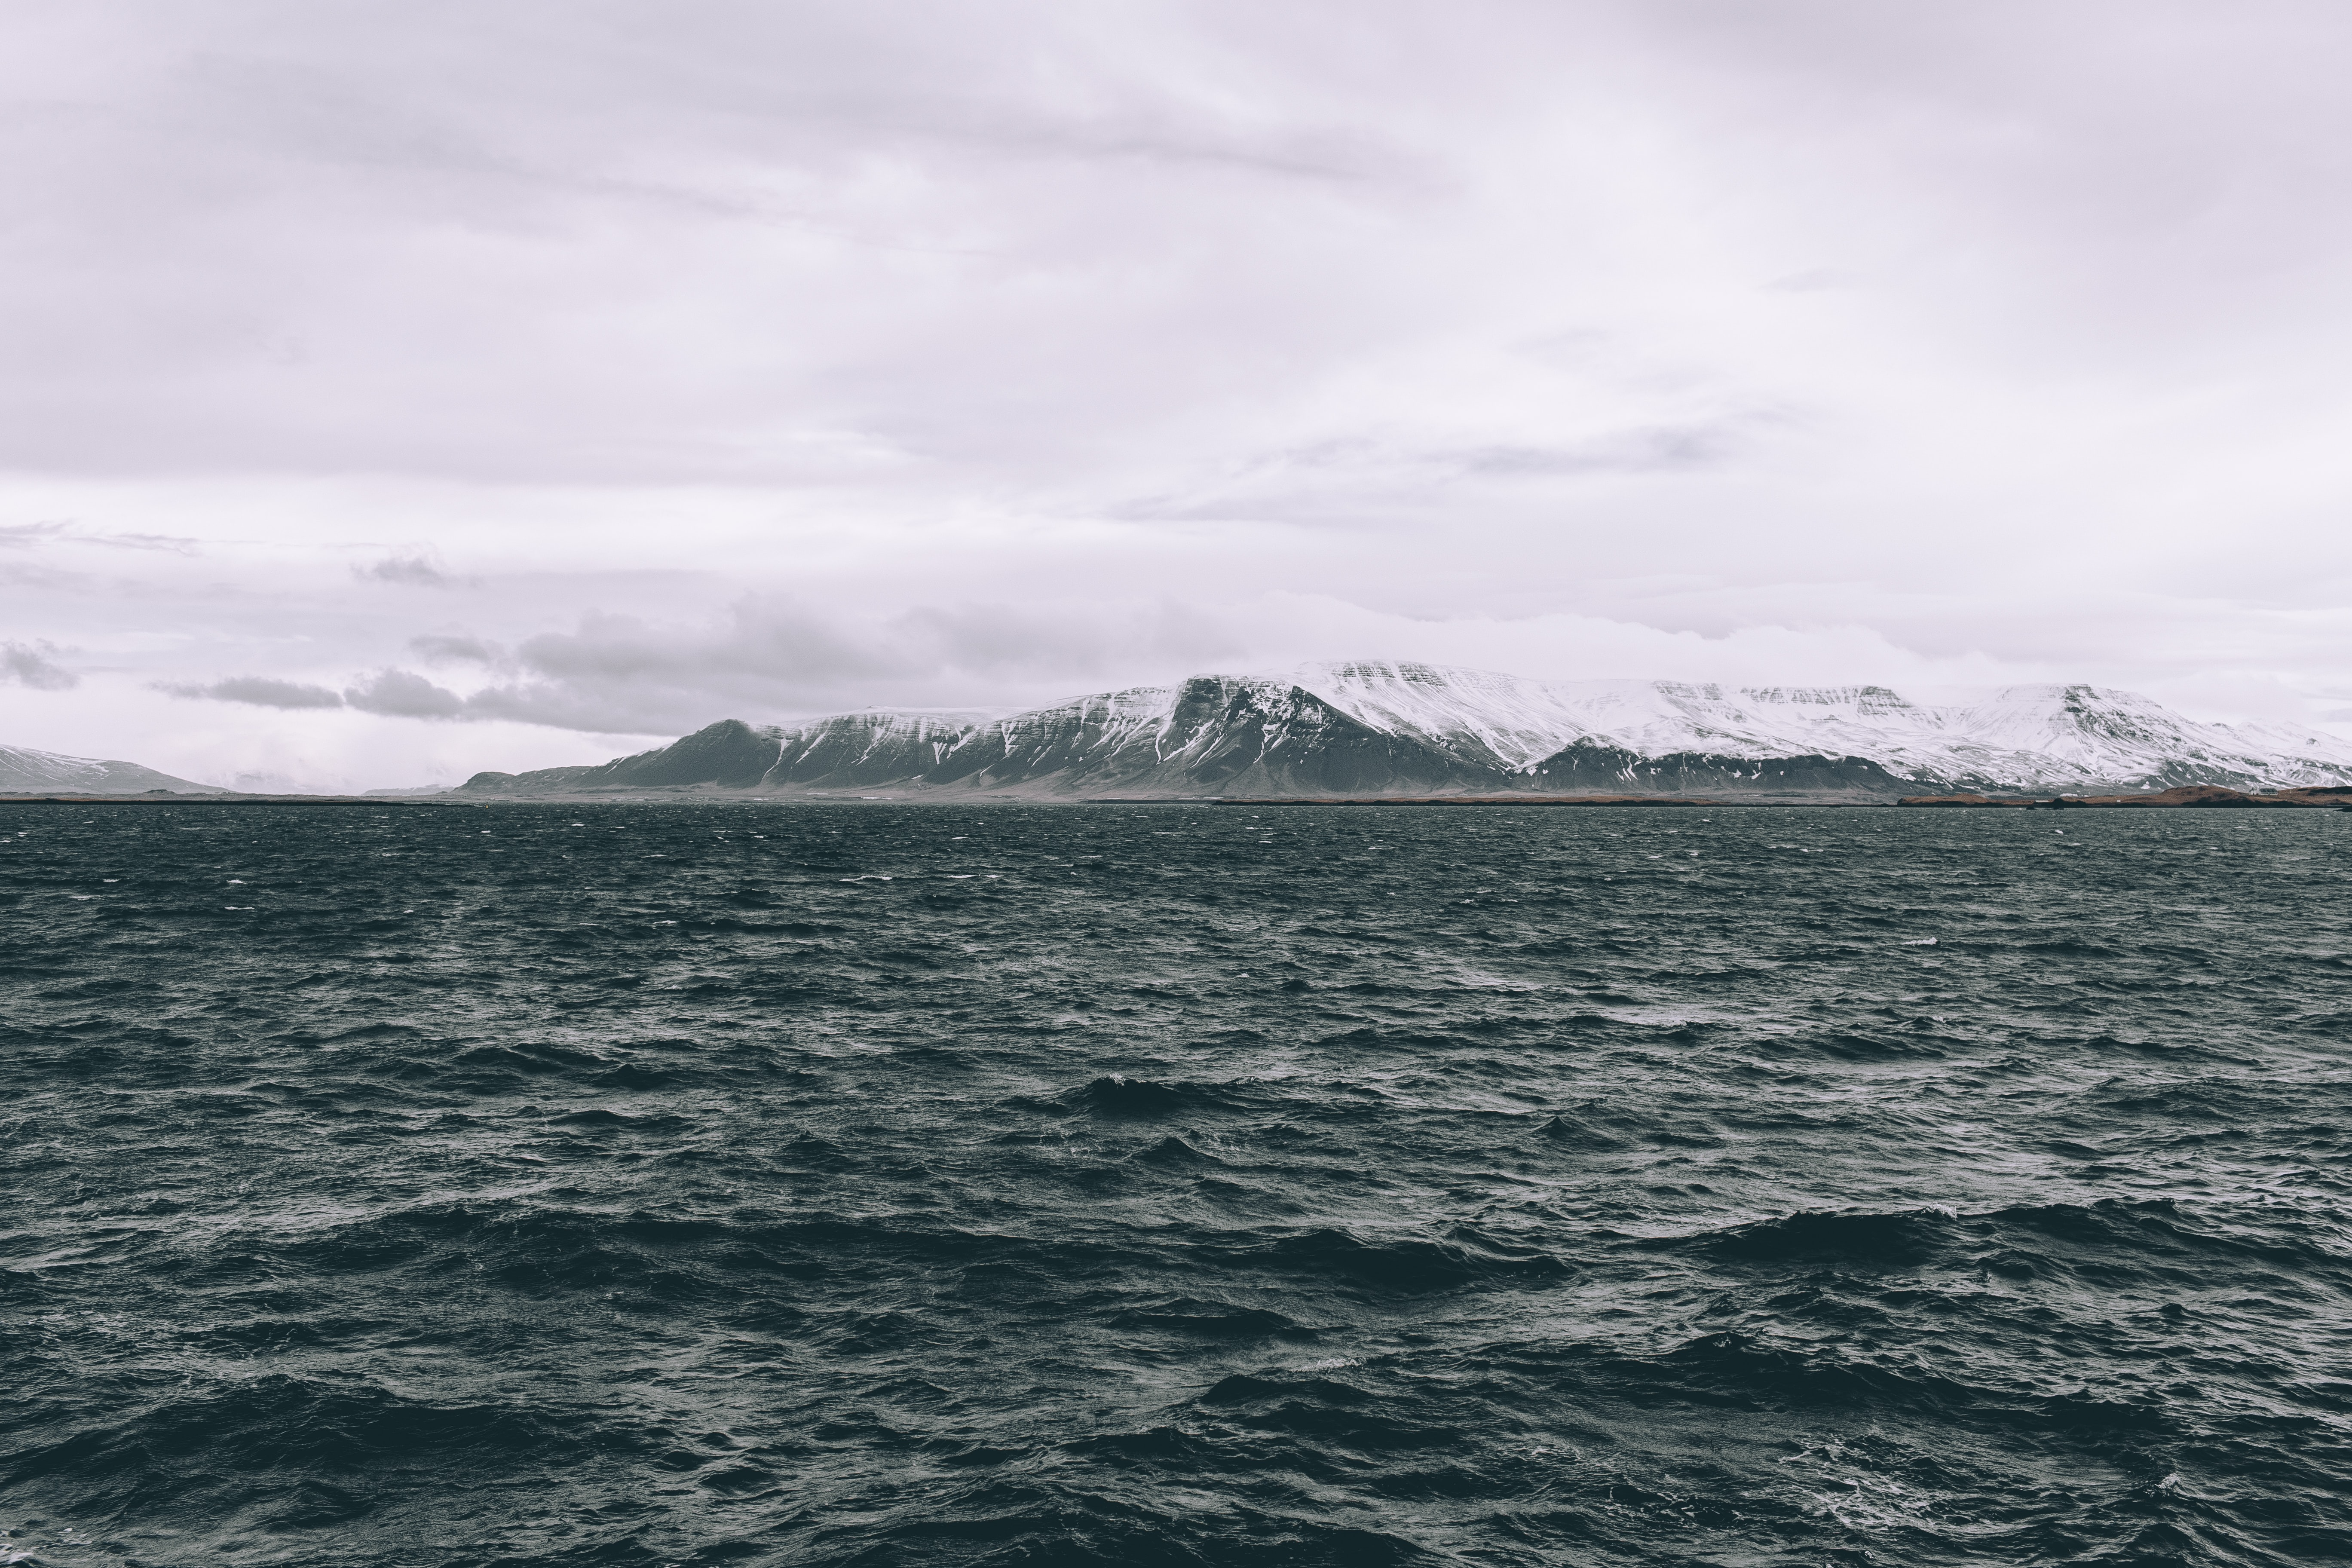 Ocean around cloudy Iceland with snow capped rocks and mountains at the horizon